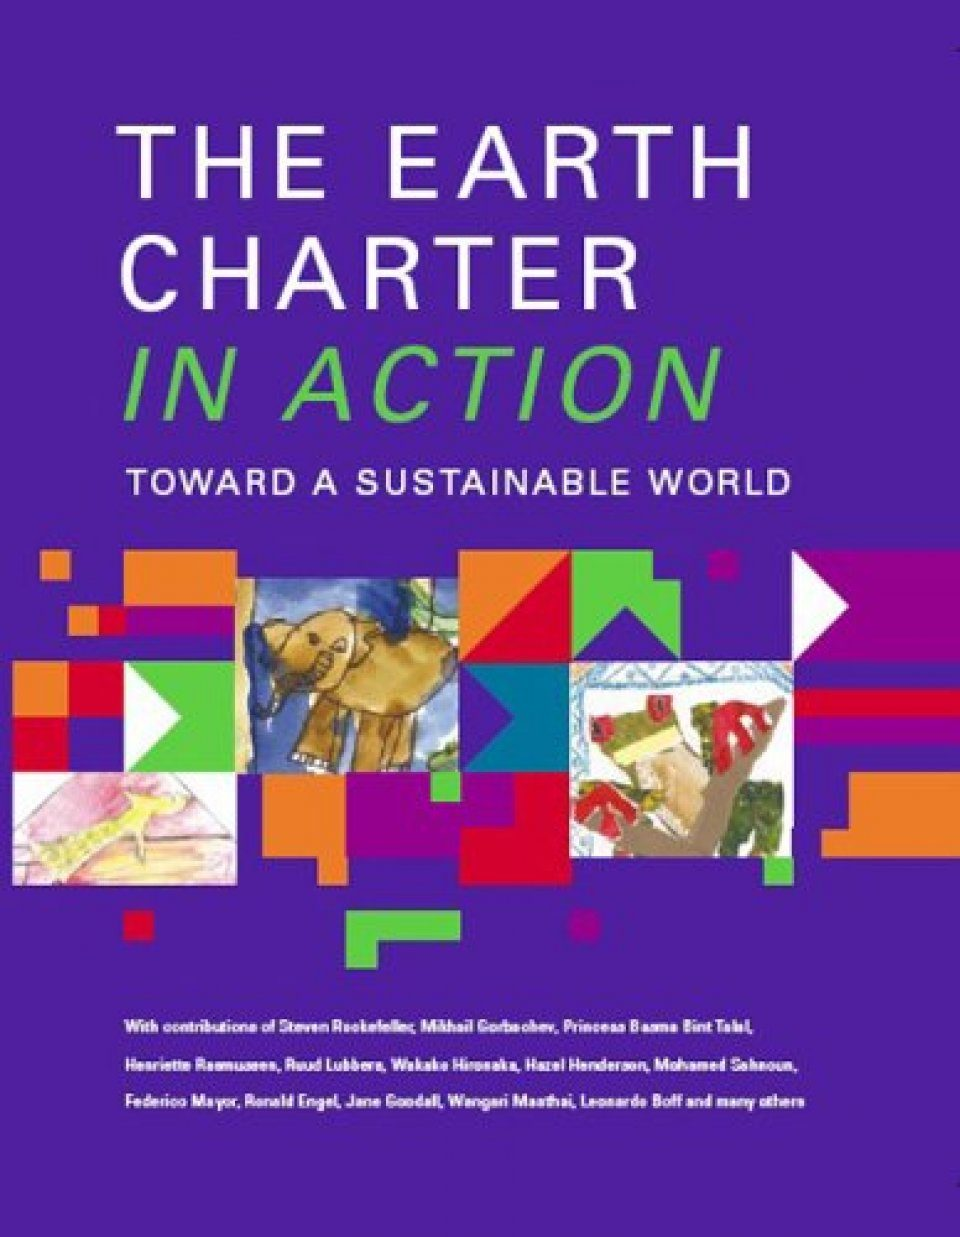 The Earth Charter in Action